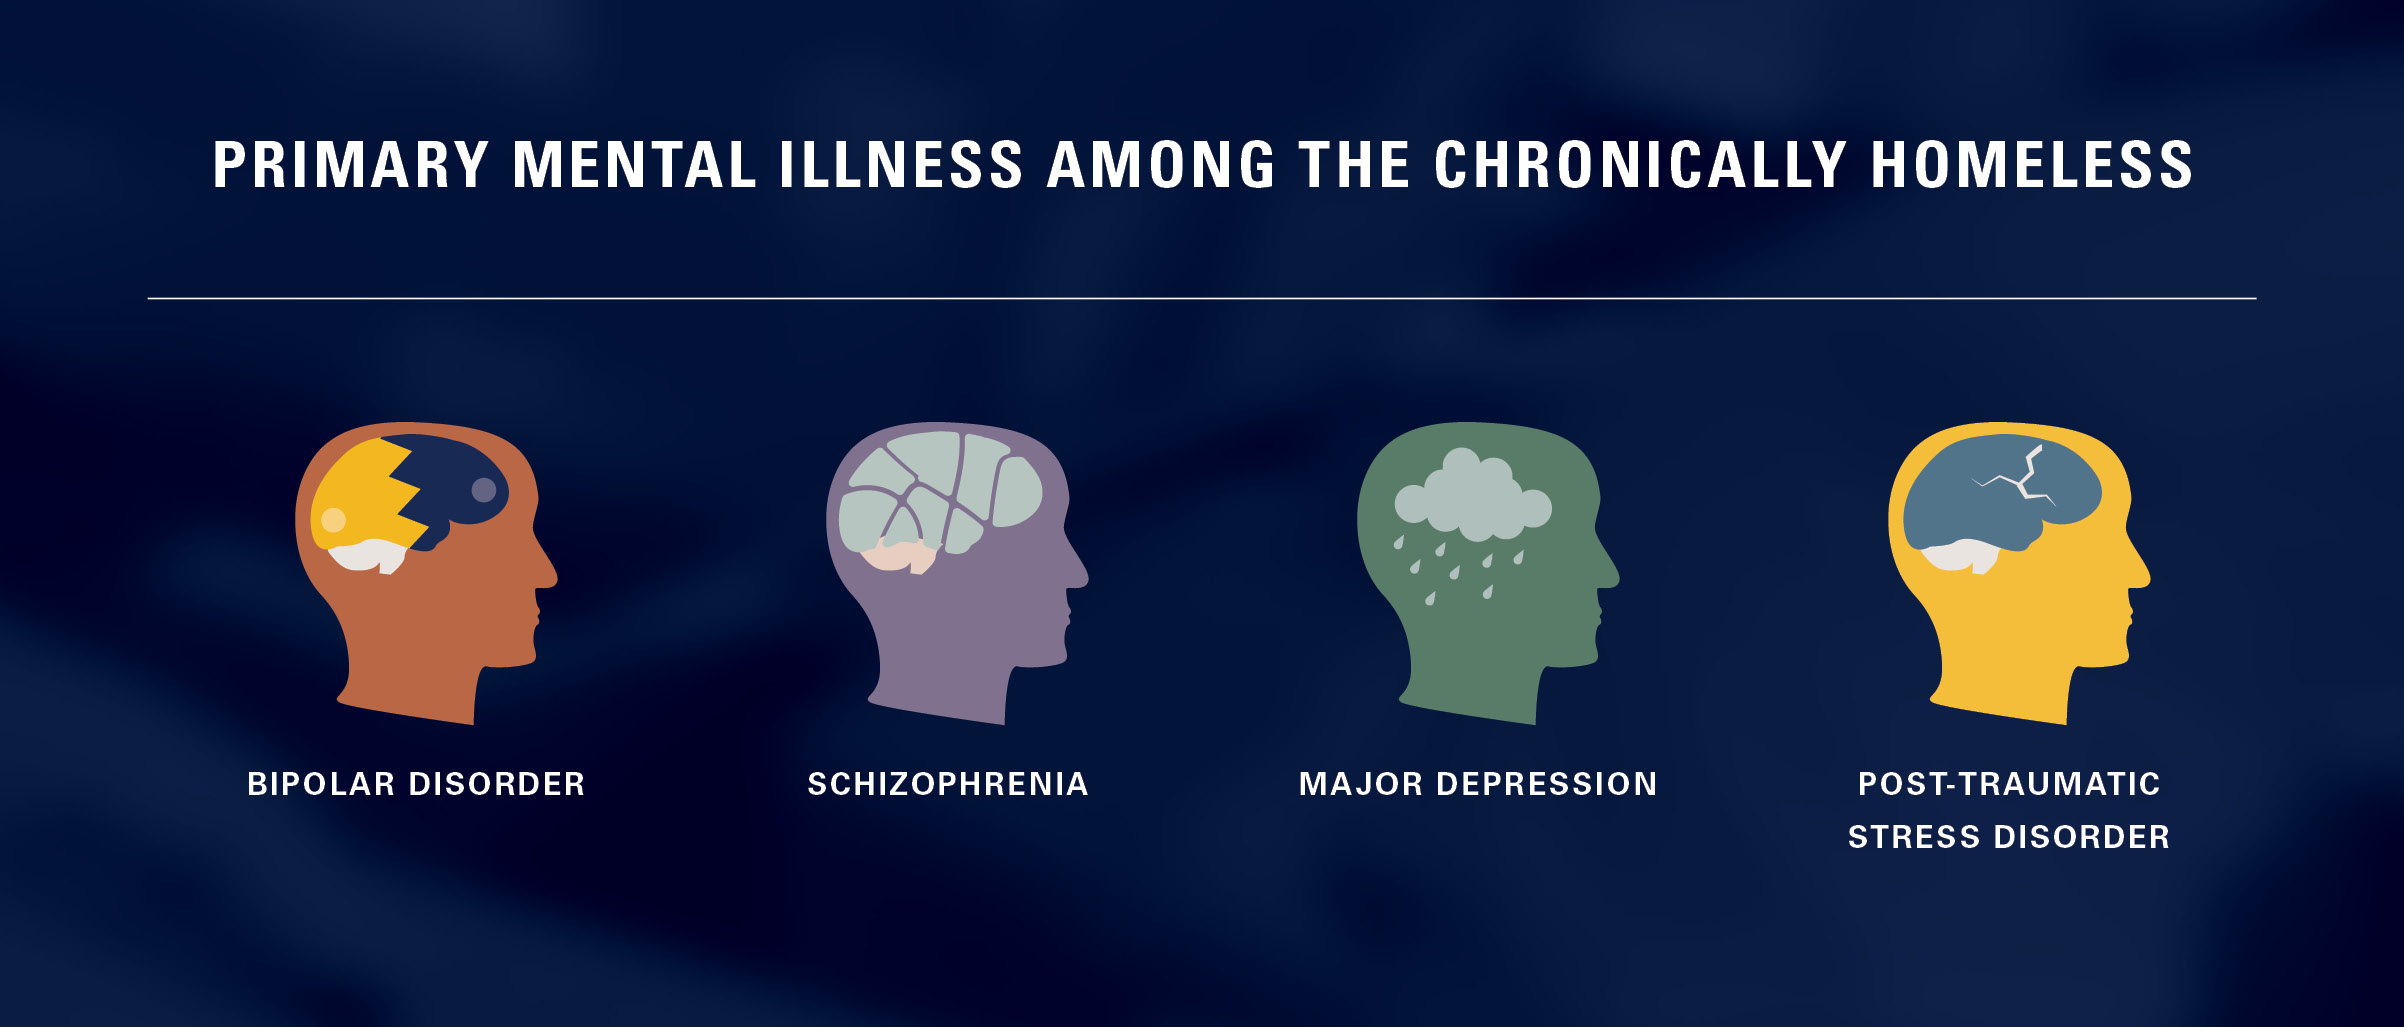 mental illness graphic - bipolar disorder, schizophrenia, depression, ptsd